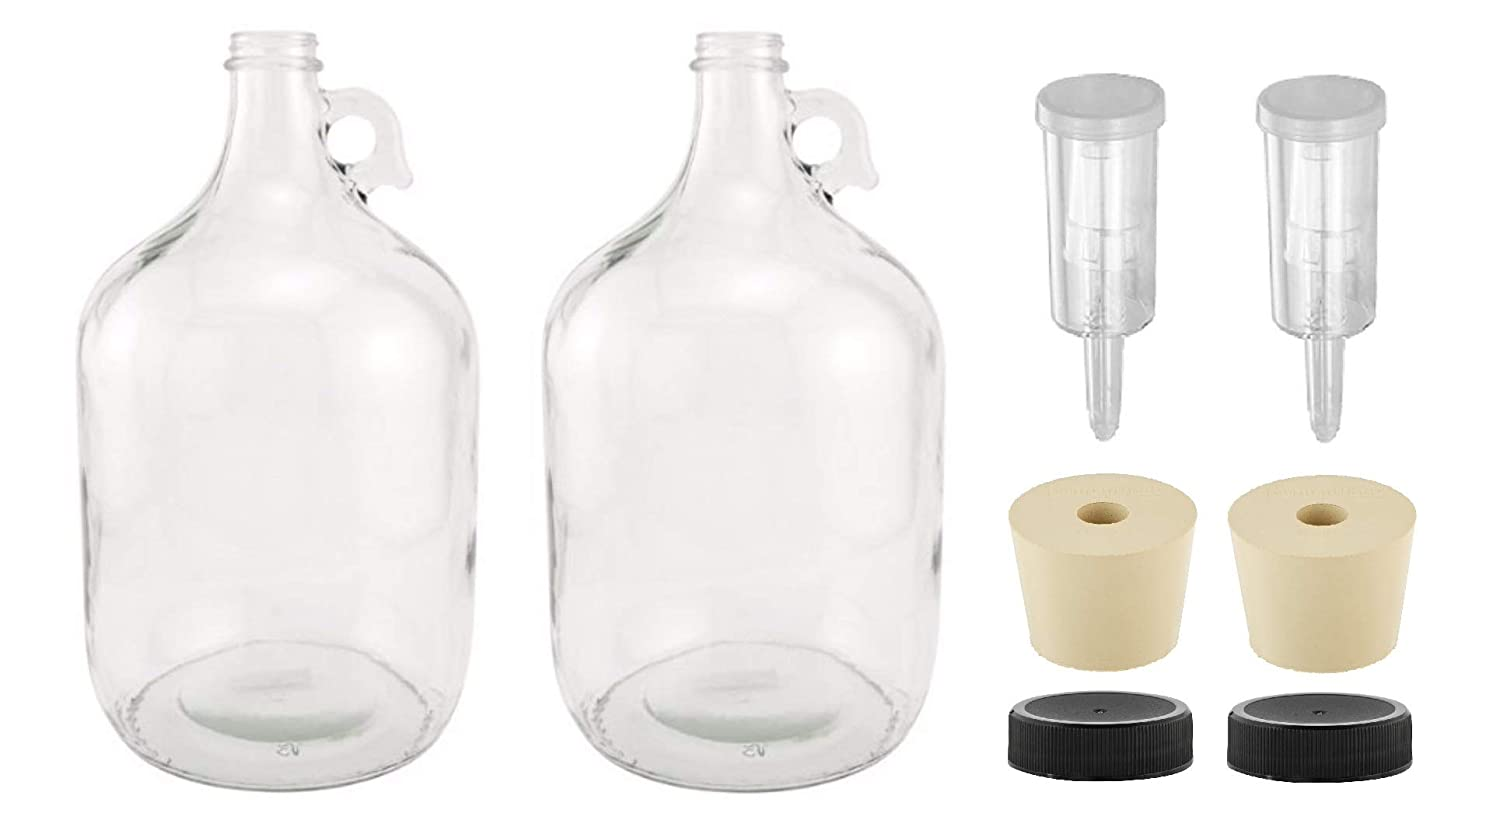 North Mountain Supply 1 Gallon Glass Fermenting Jug with Handle, 6.5 Rubber Stopper, 3-Piece Airlock, Black Plastic Lid - Set of 2